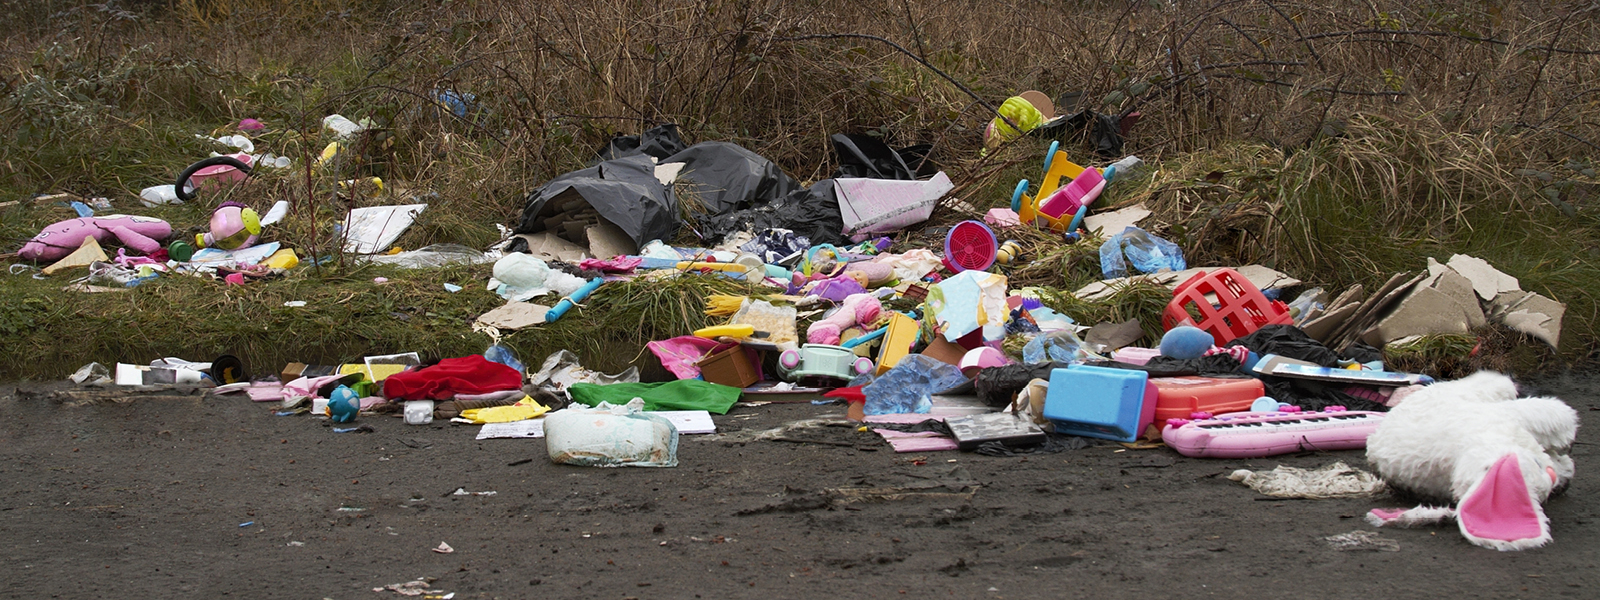 Pile of illegally dumped rubbish